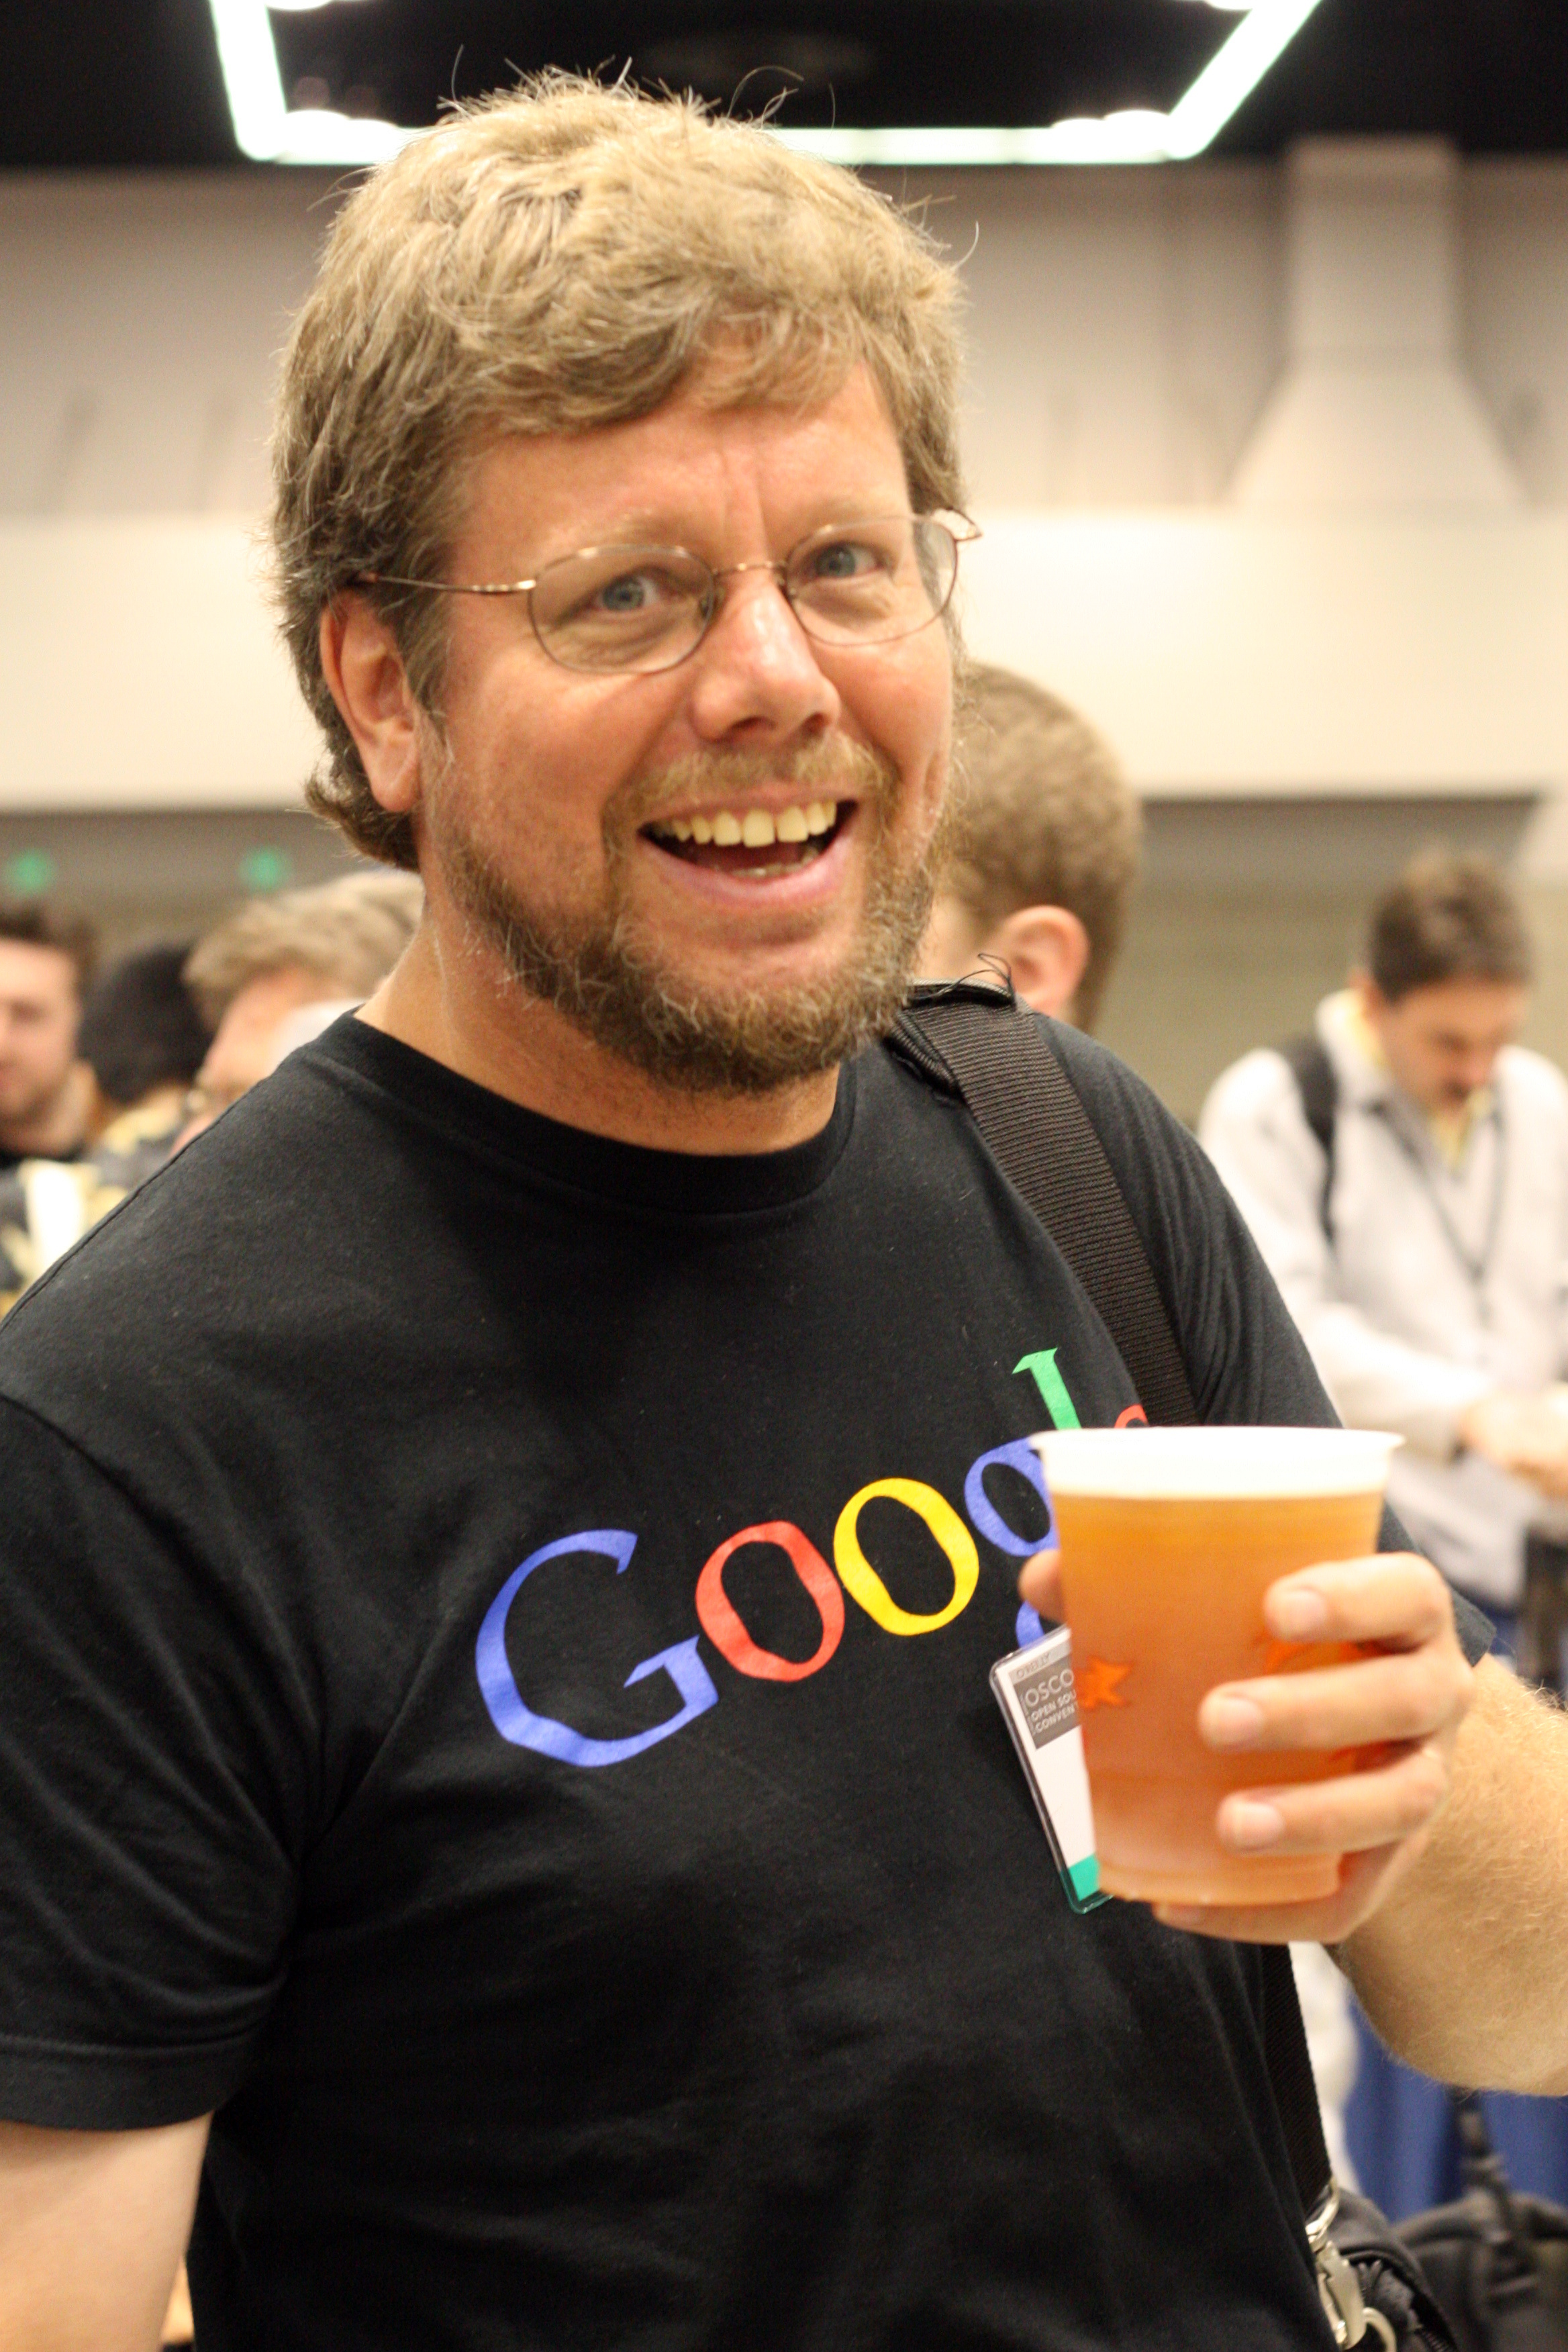 https://upload.wikimedia.org/wikipedia/commons/6/66/Guido_van_Rossum_OSCON_2006.jpg